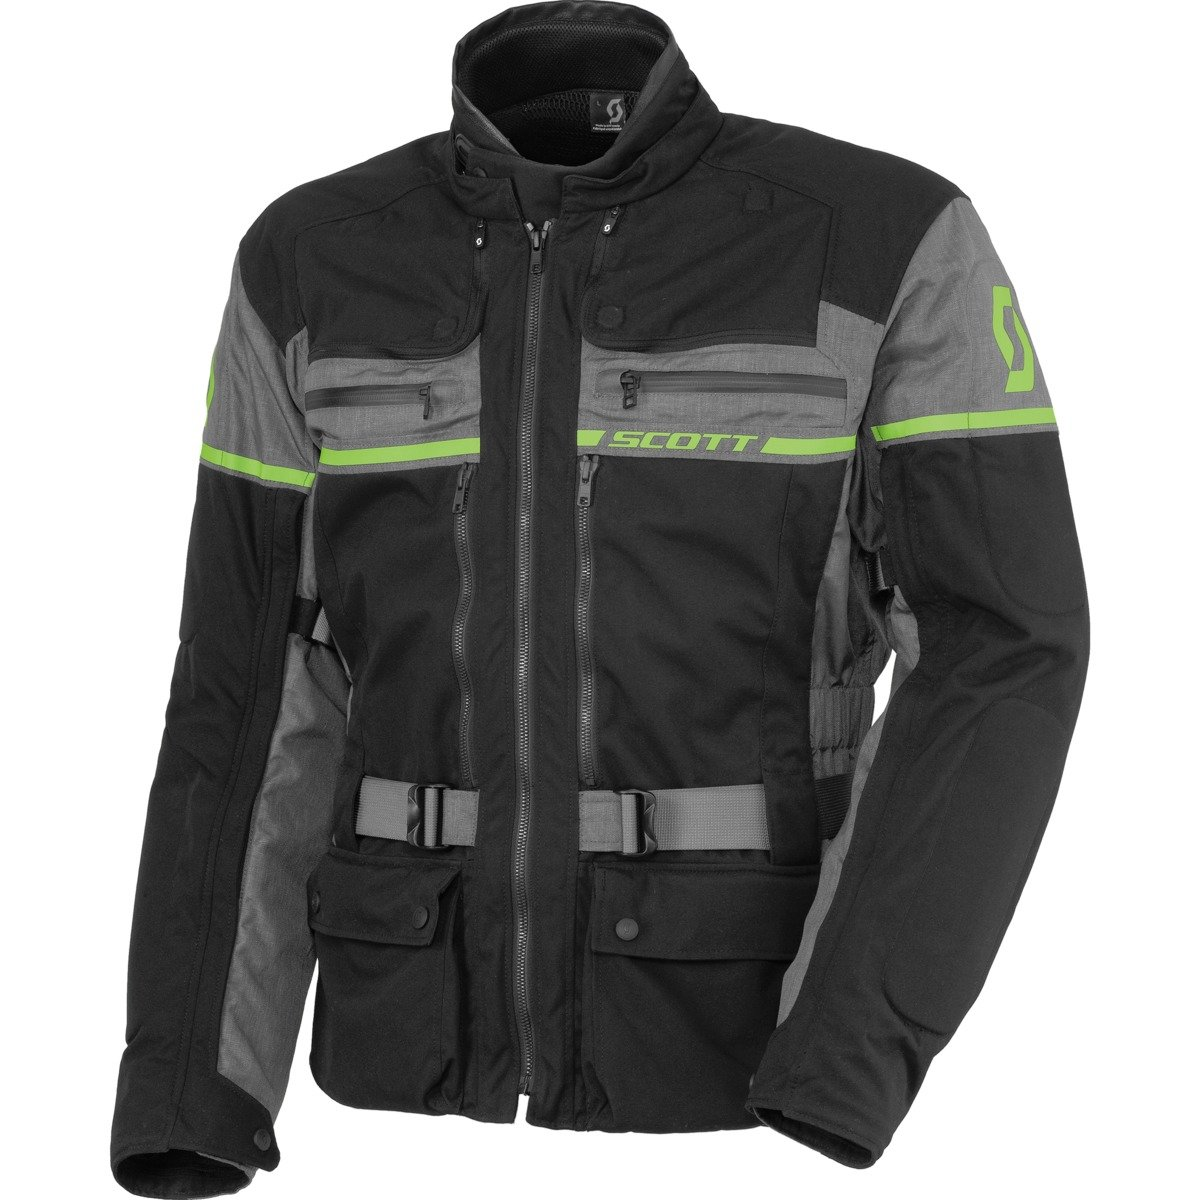 Scott All Terrain TP Motocicleta/Enduro Chaqueta Colour ...